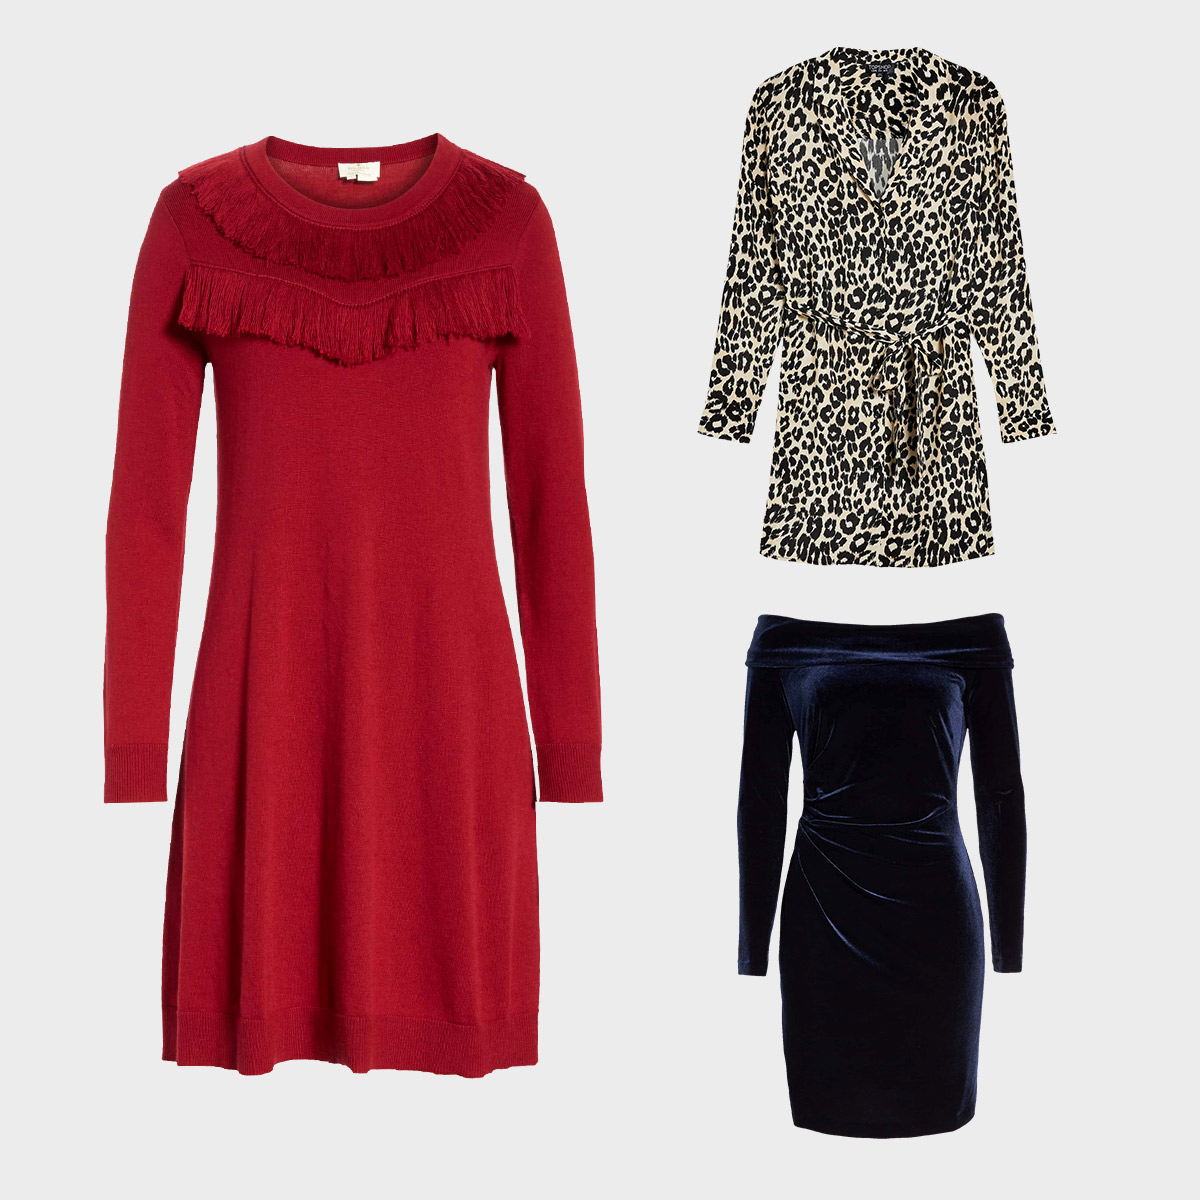 Three dresses perfect for wearing at night during the fall.